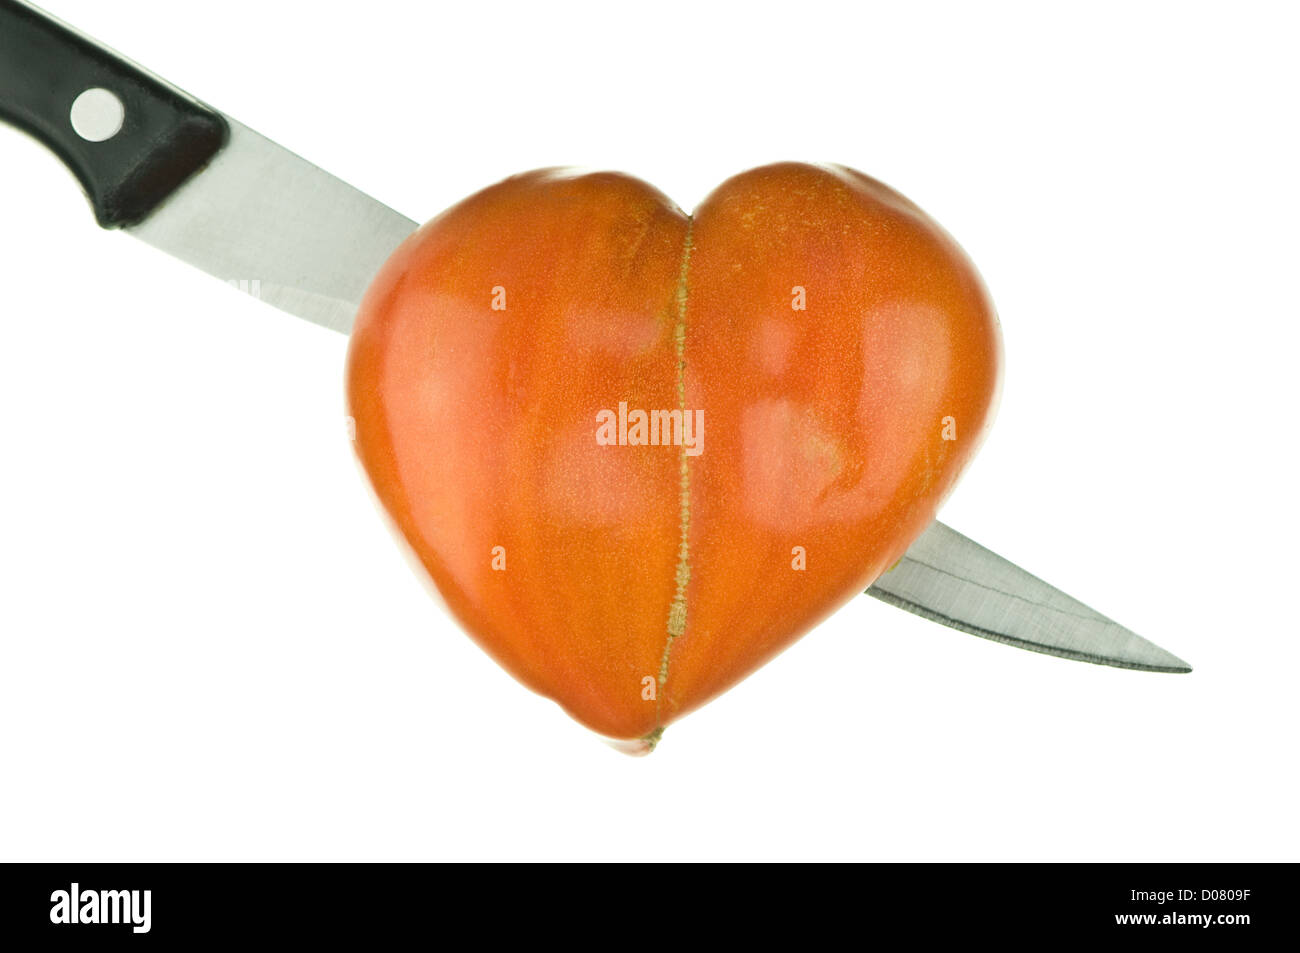 heart-shaped tomato pierced by a blade on pure white background - Stock Image